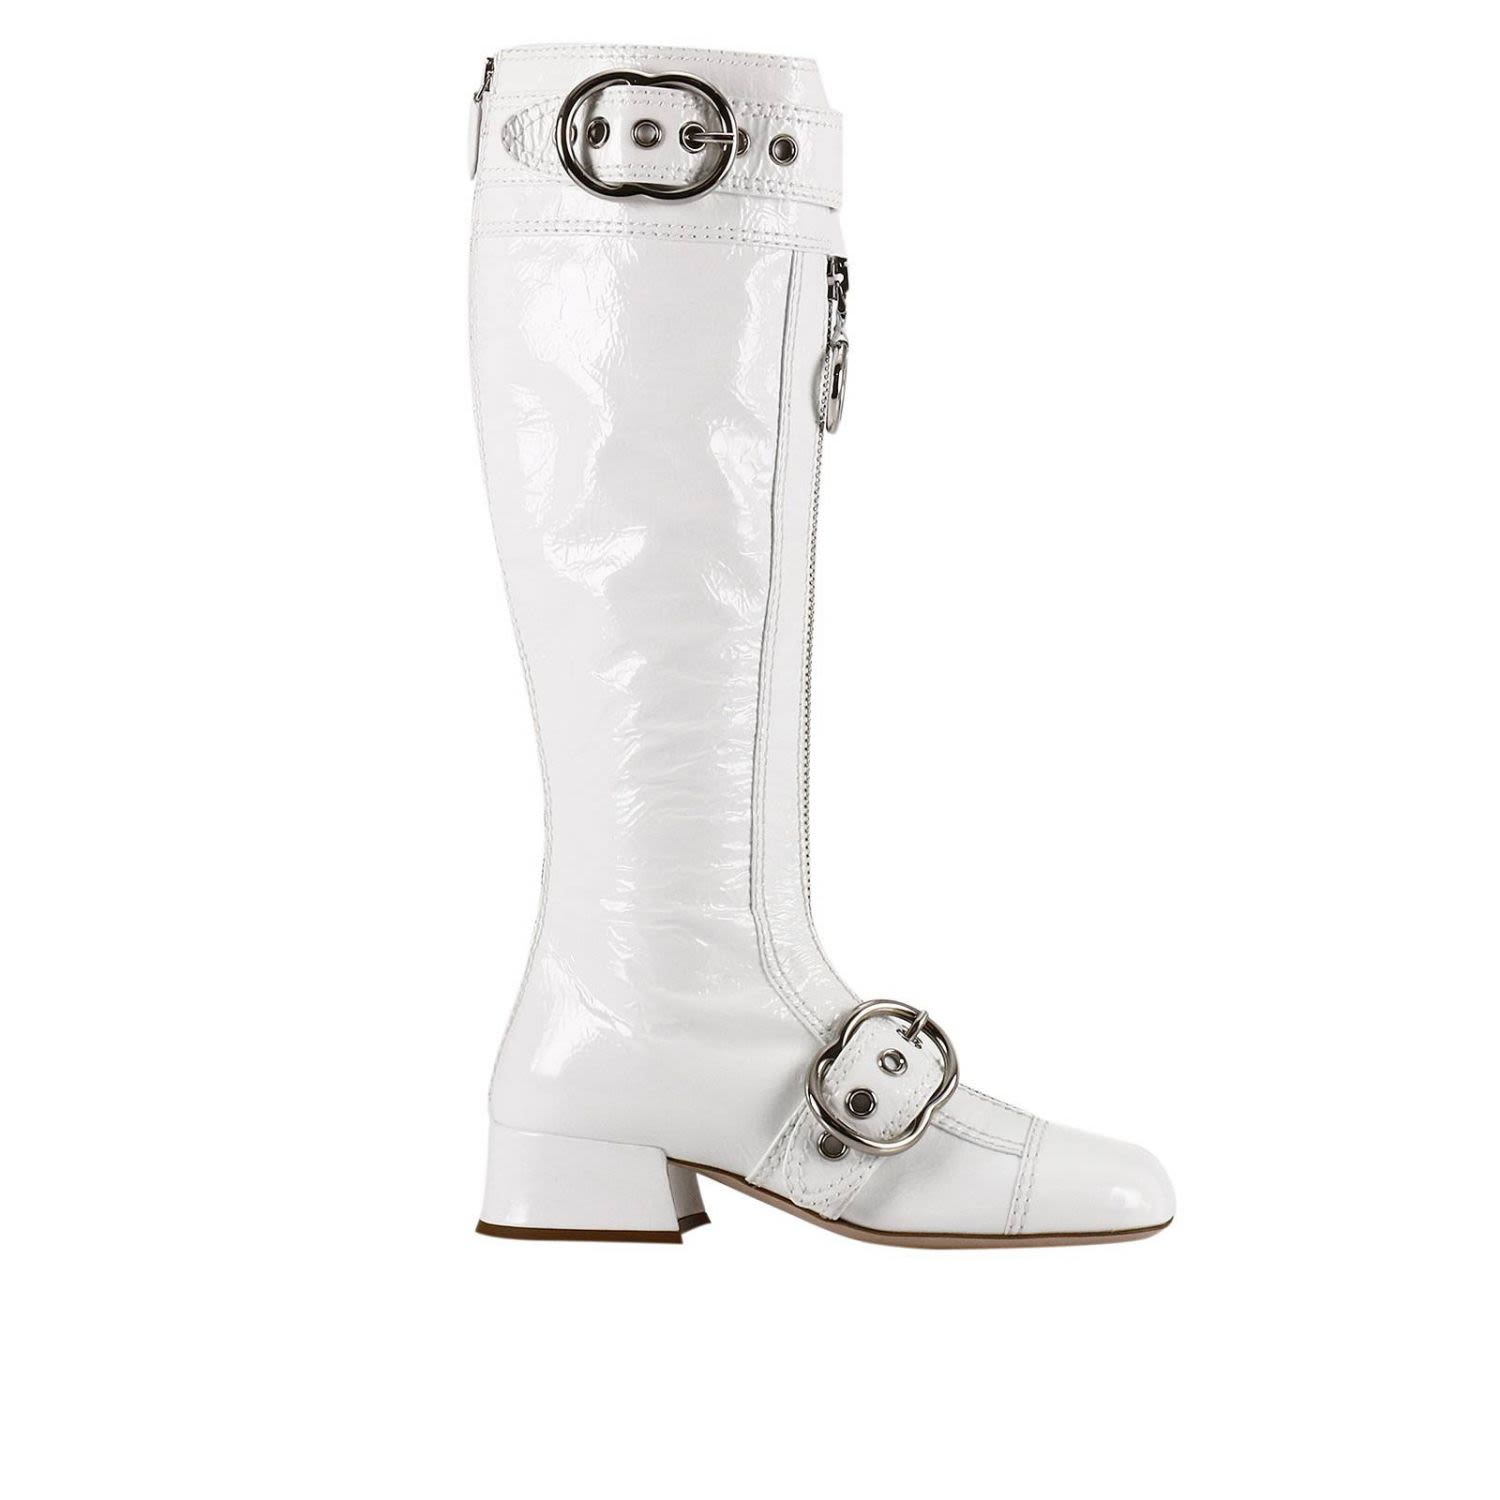 Boots Shoes Women Miu Miu